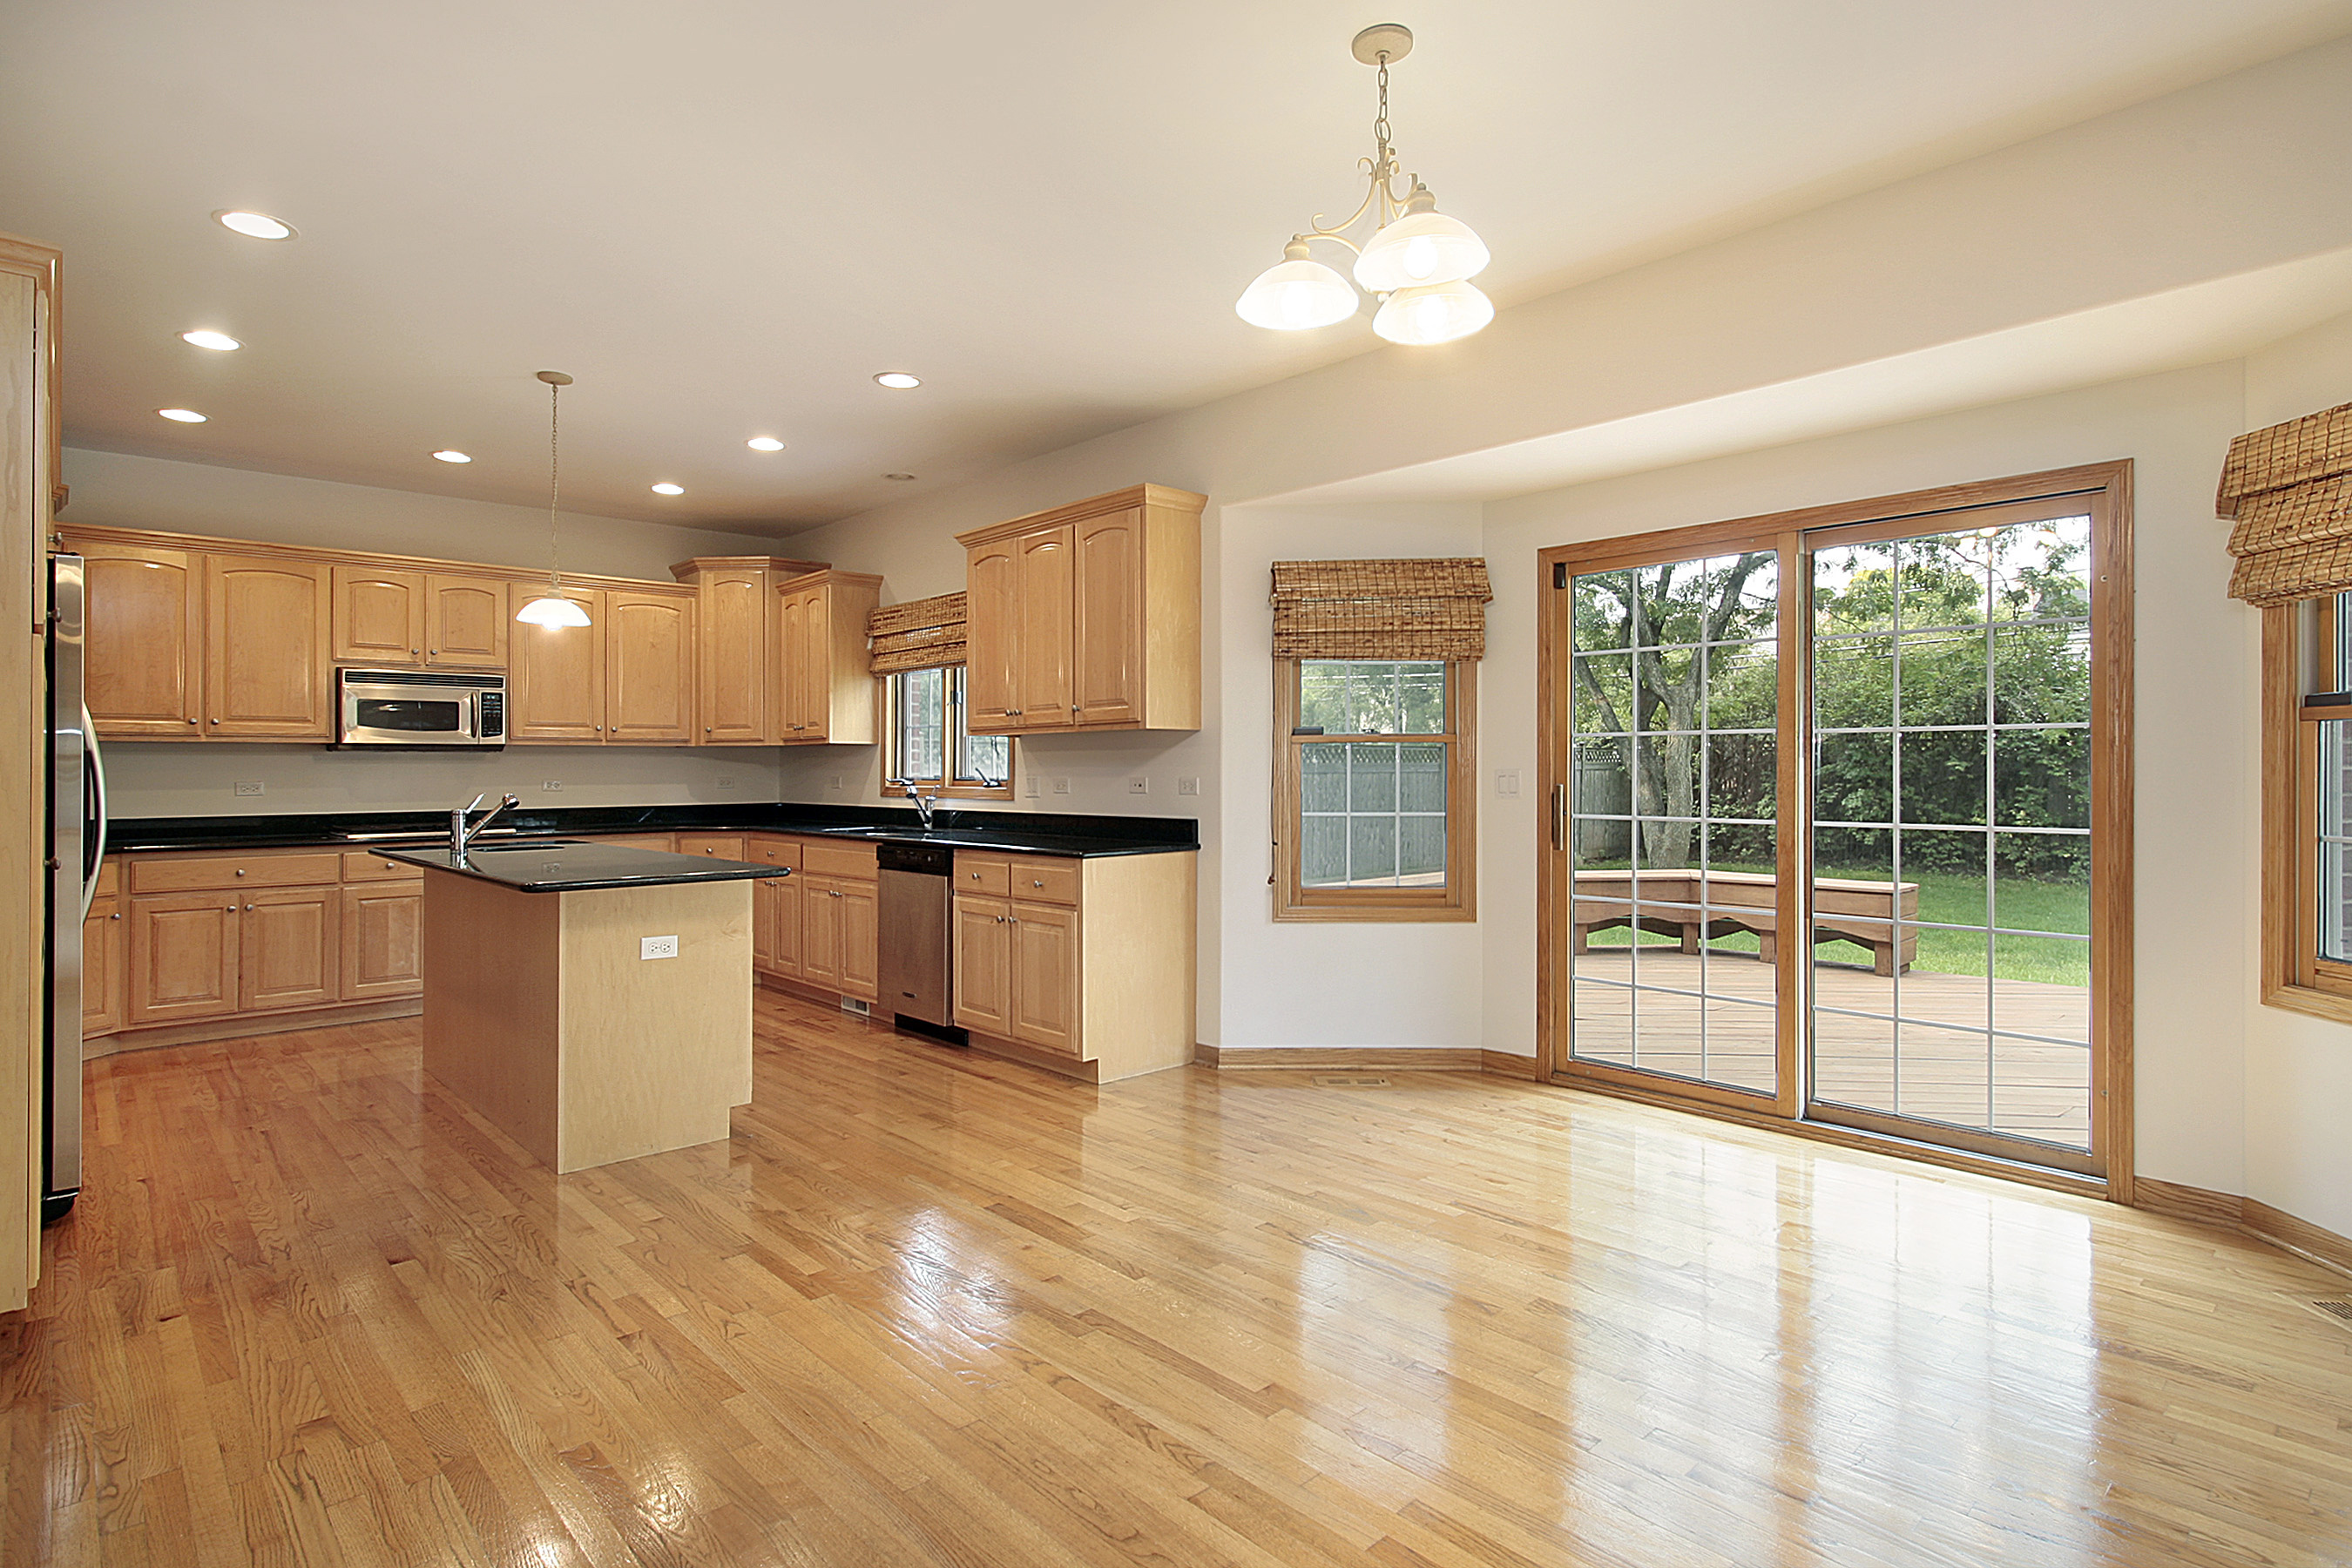 Things to consider when remodeling the house XJLPAYY